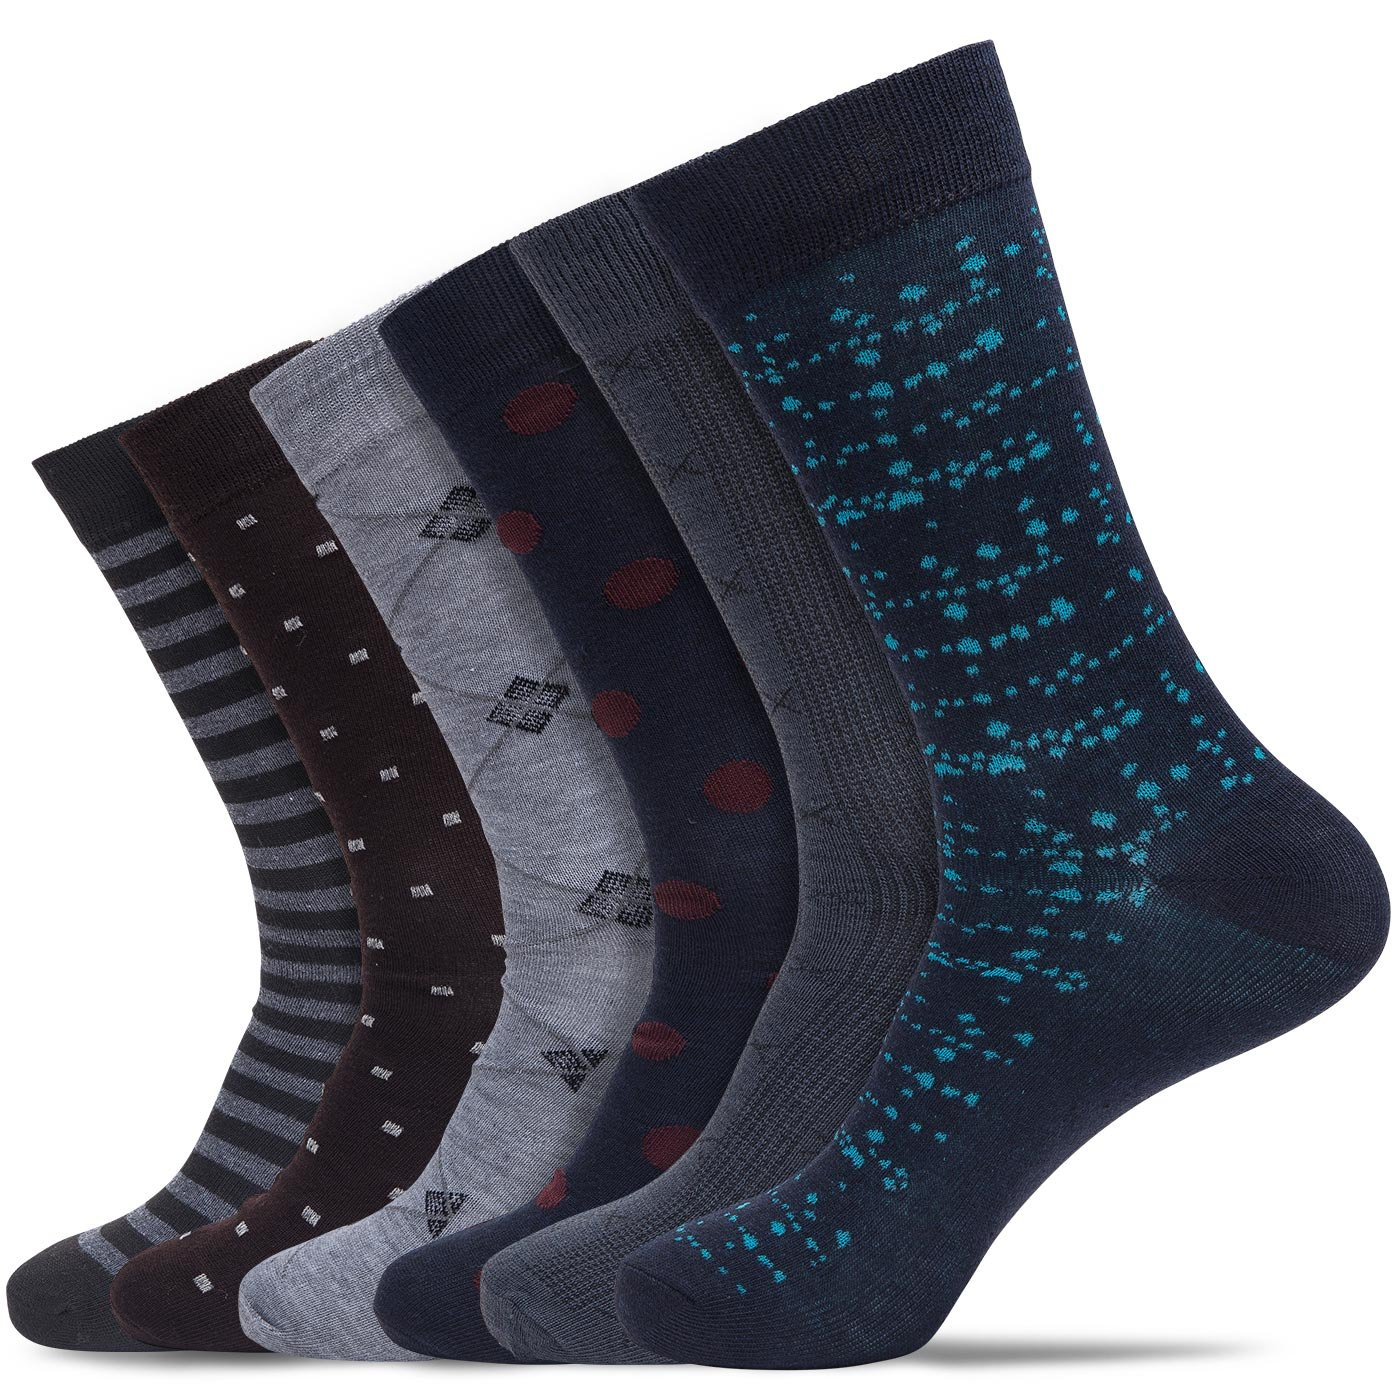 Active Premium Mens Thin Weight Mid-to-Lower Calf Professional Design Business Dress Socks (6 Pairs) (Classic Multi, Shoe: 8-12/Sock: 10-13)